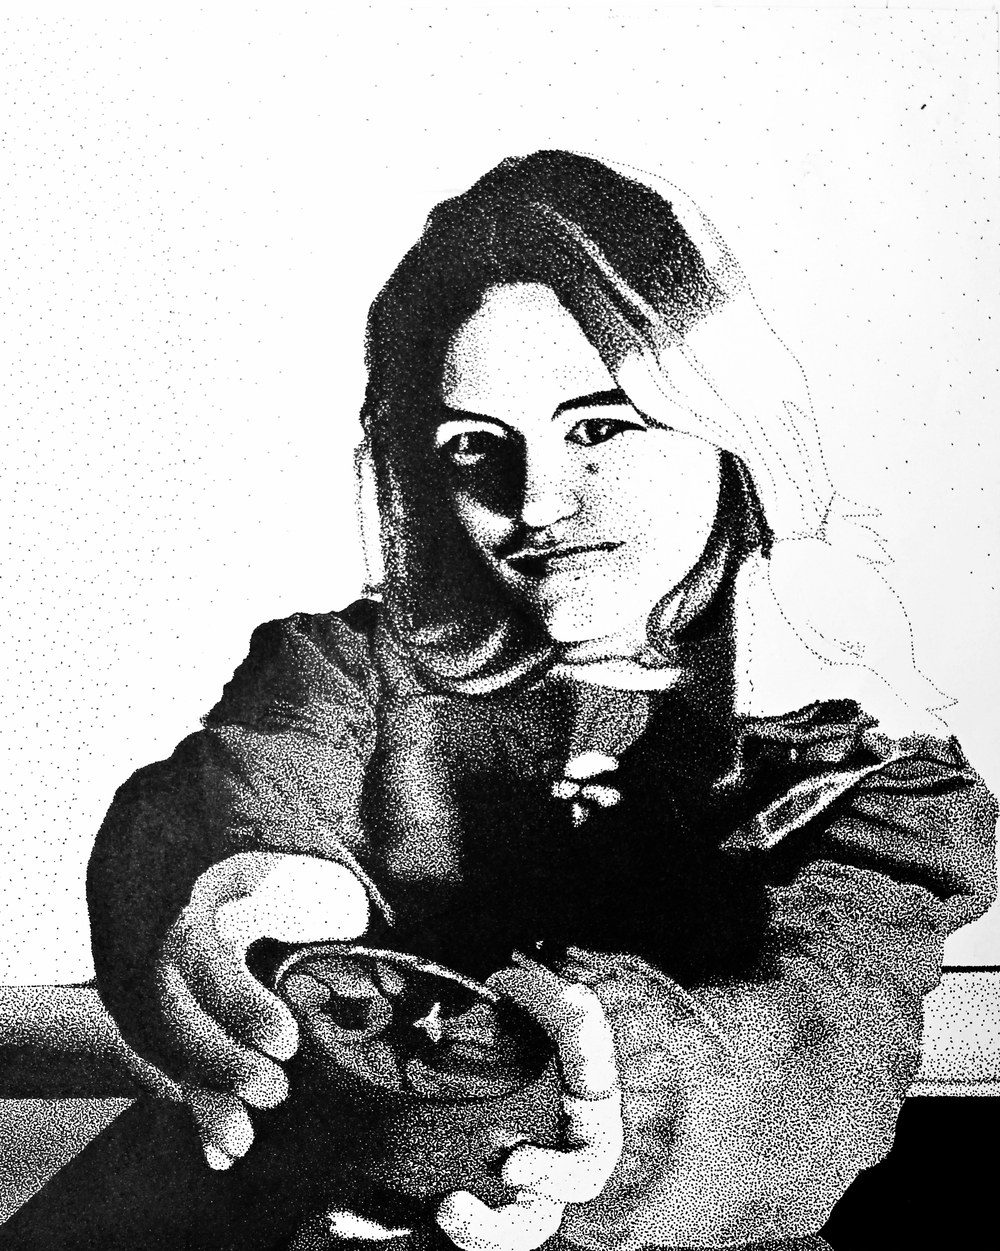 High school ink project, self portrait done in stippling, 1996